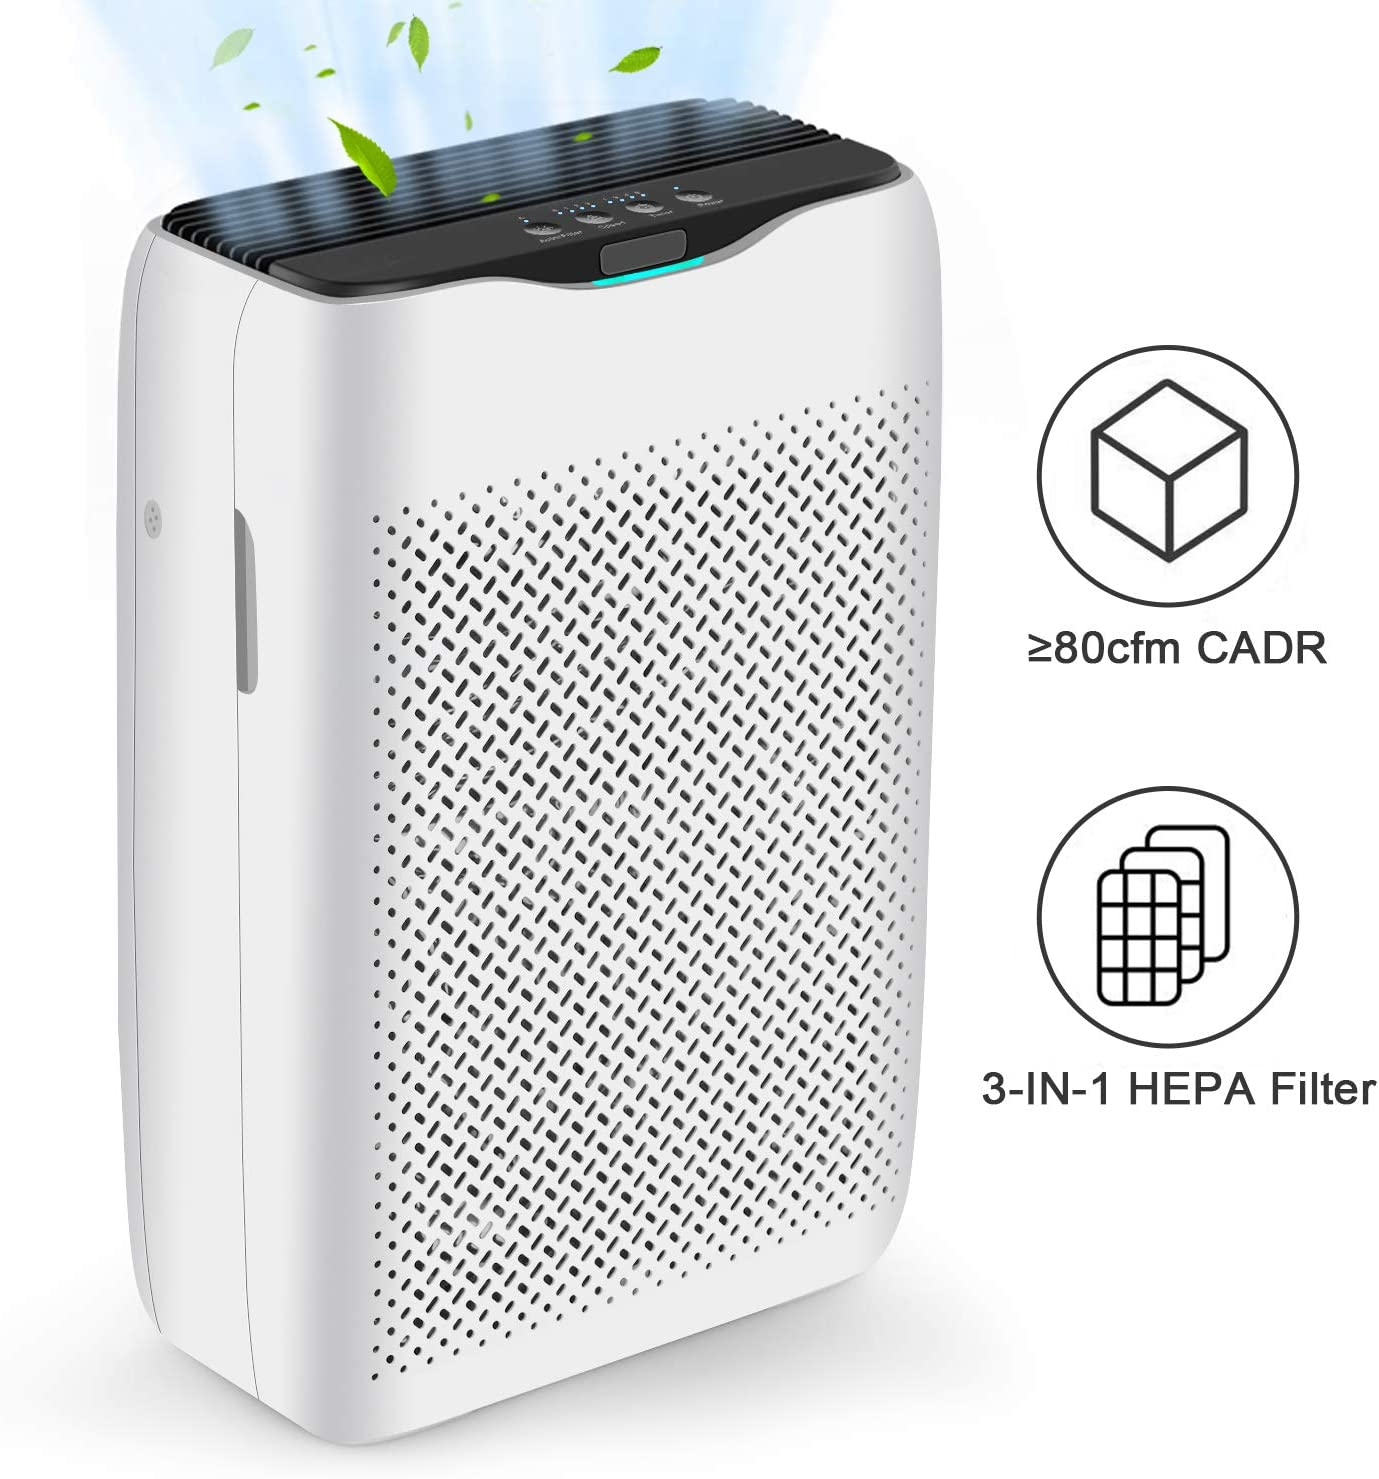 cacat Air Purifier with True HEPA Filter, Air Cleaner for Home Allergiers and Pets Hair, Smokers, Moldd, Pollen, Dust, Quiet Odor Eliminators for Bedroom